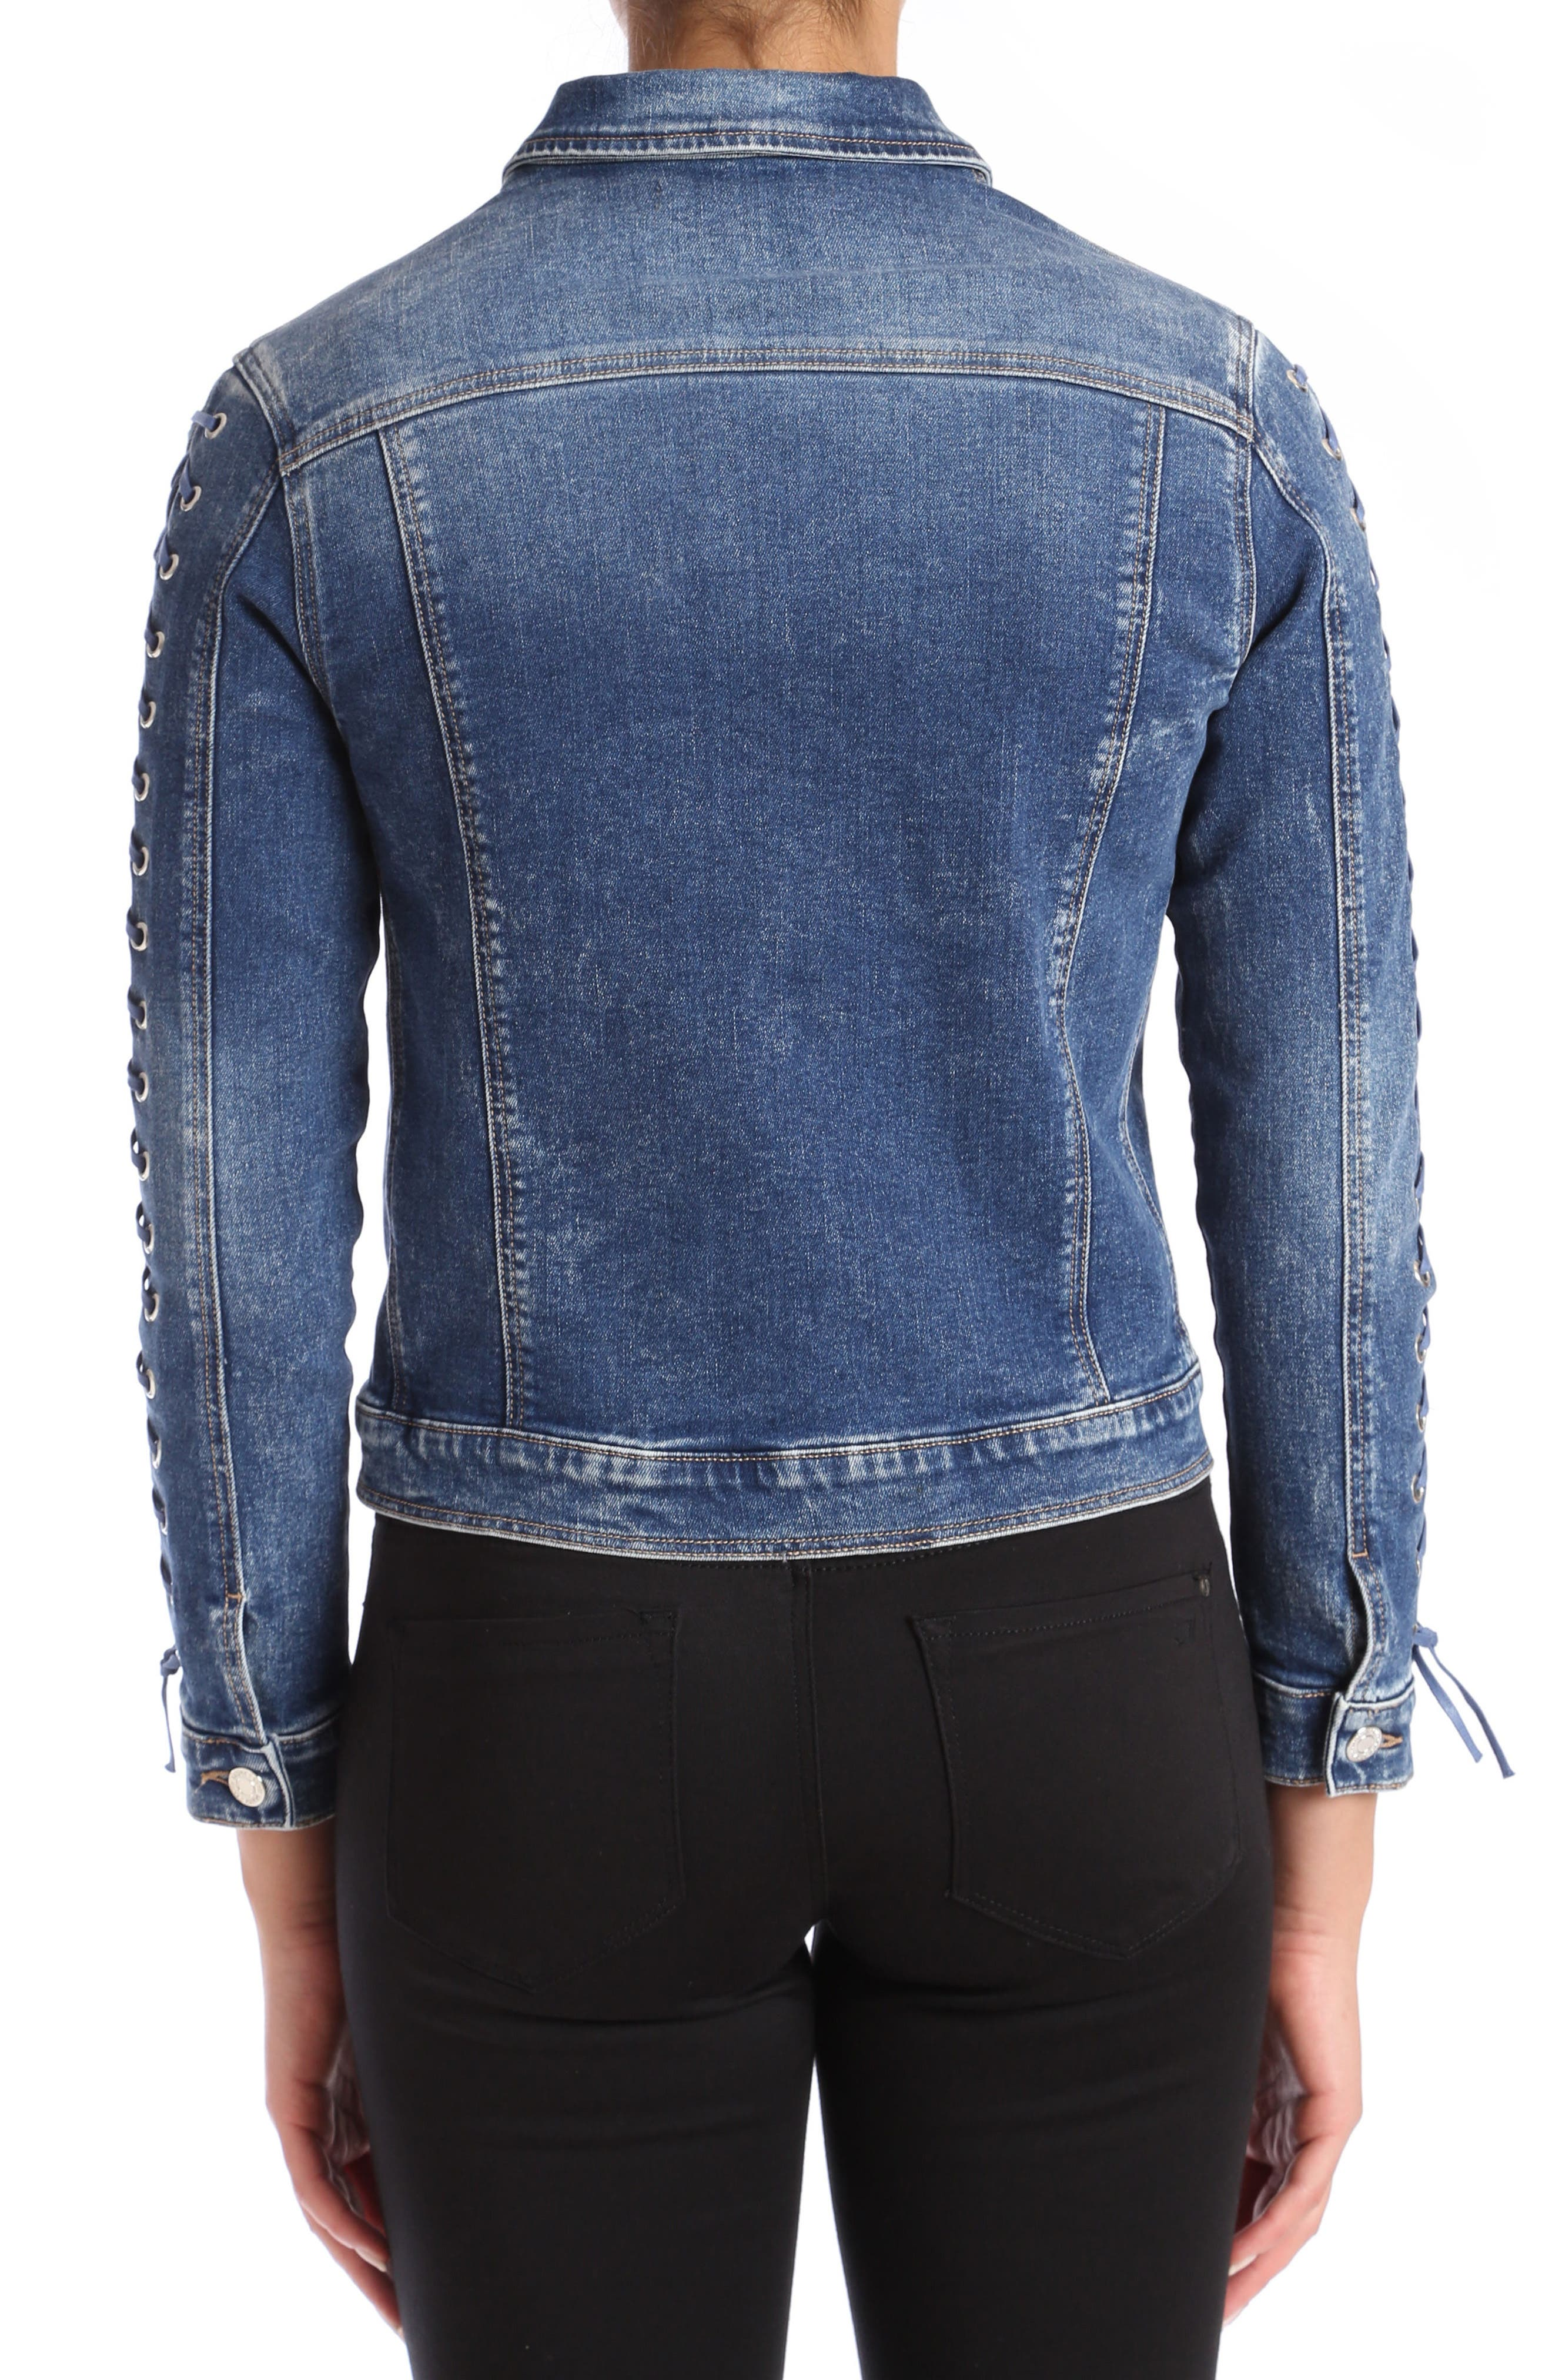 Katy Lace-Up Sleeve Denim Jacket,                             Alternate thumbnail 2, color,                             Dark Indigo Eyelet